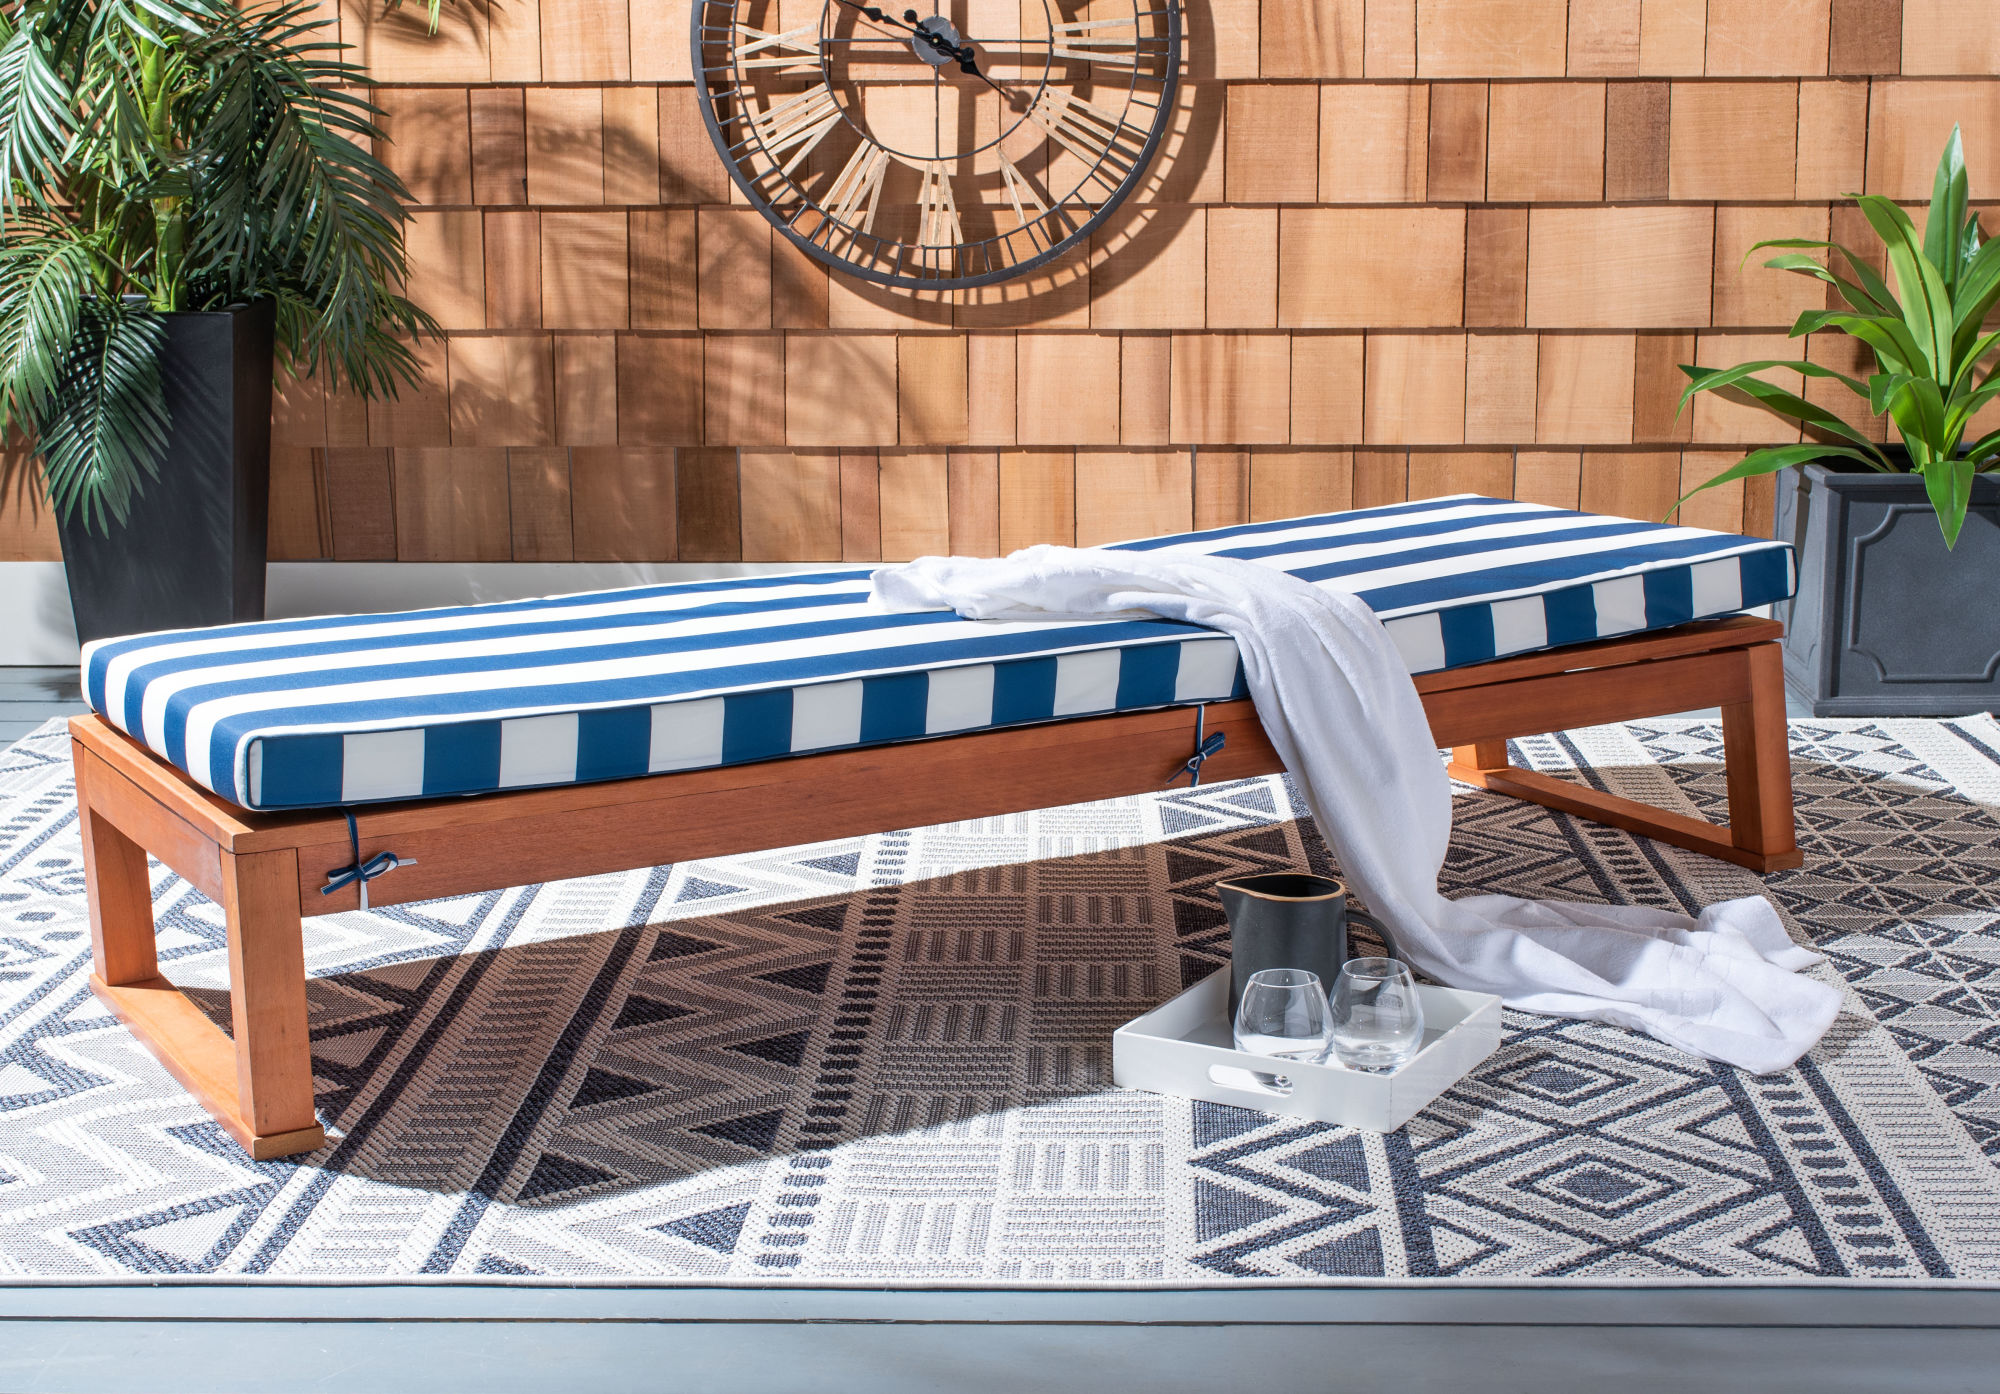 Solano Sunlounger on Safavieh Outdoor Living Solano Sunlounger id=26799